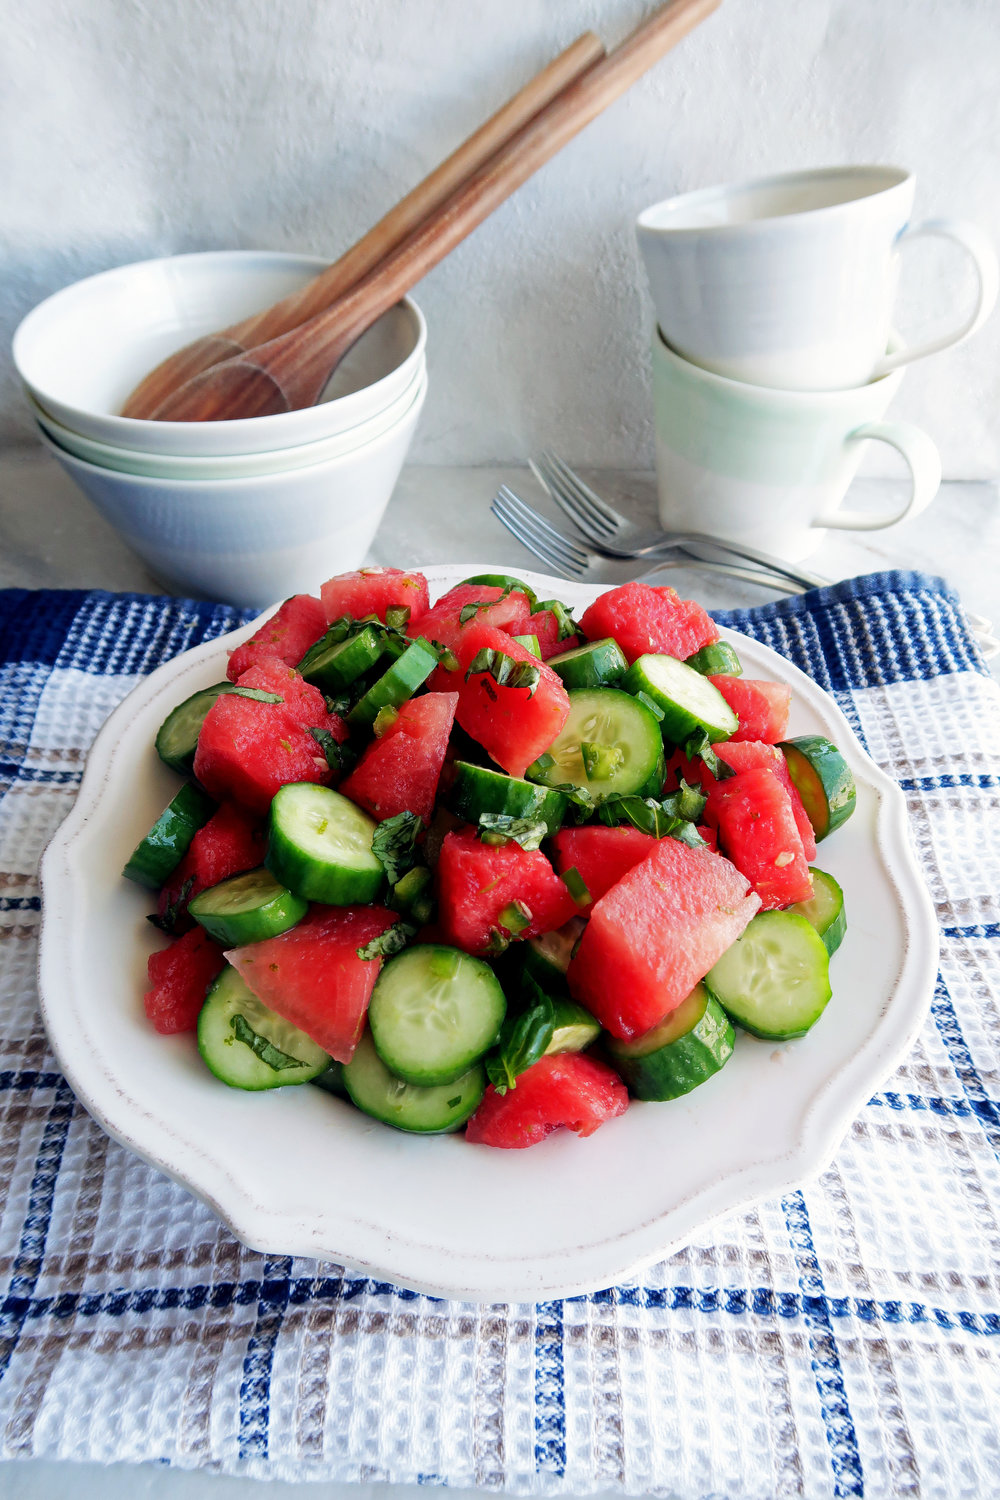 Watermelon Cucumber Jalapeno Salad on a white plate with three bowls, two wooden spoons, two forks, and two cups in the background.